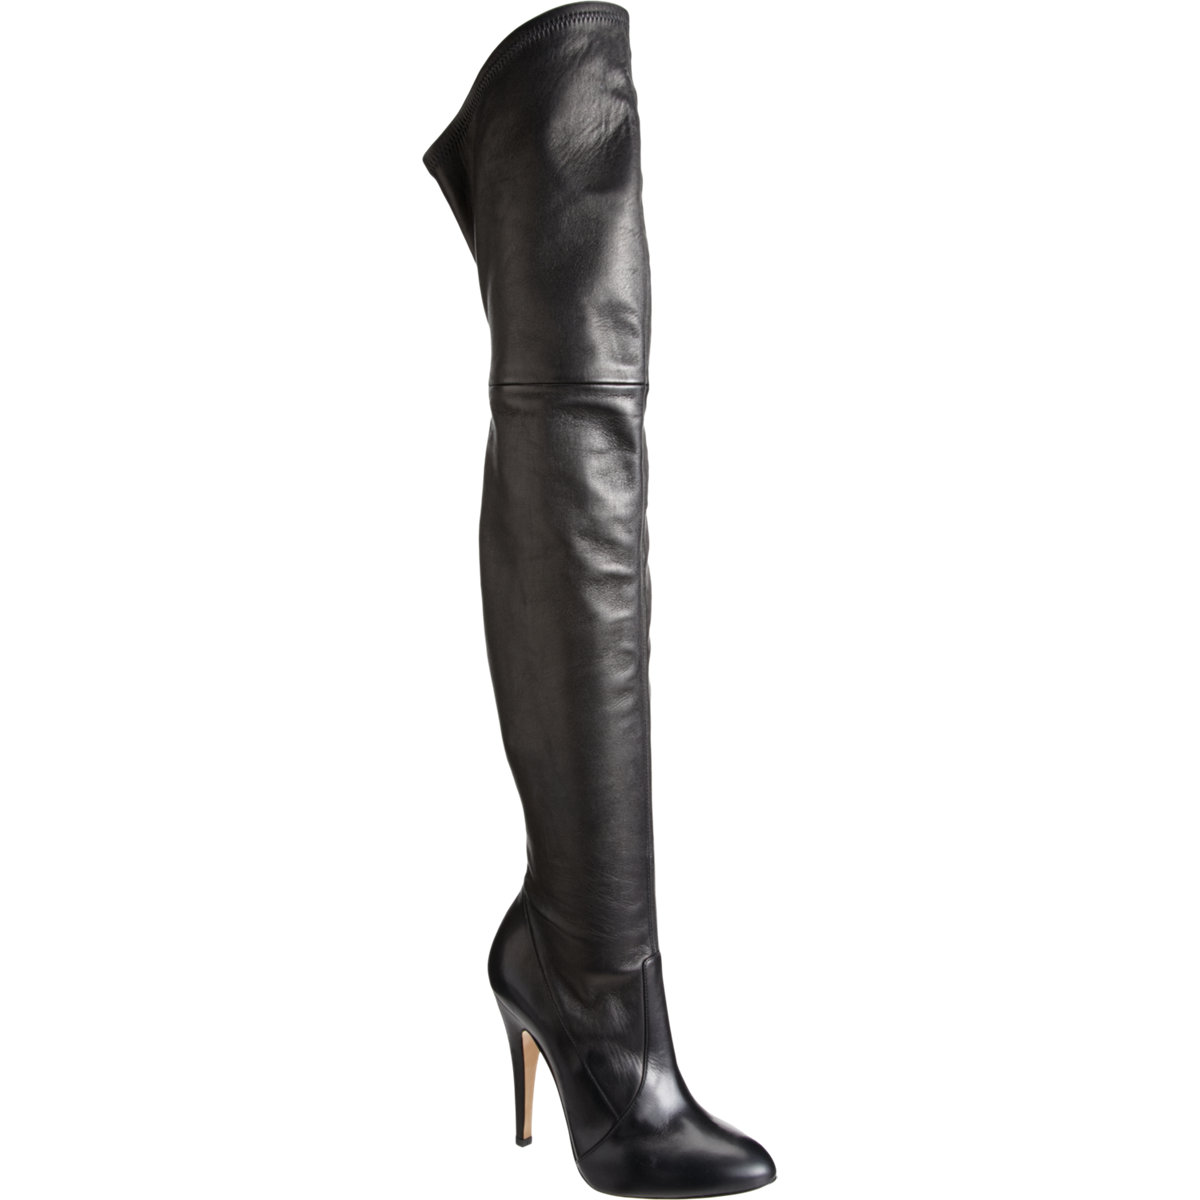 Over The Knee Stretch Boots VhptcyT4